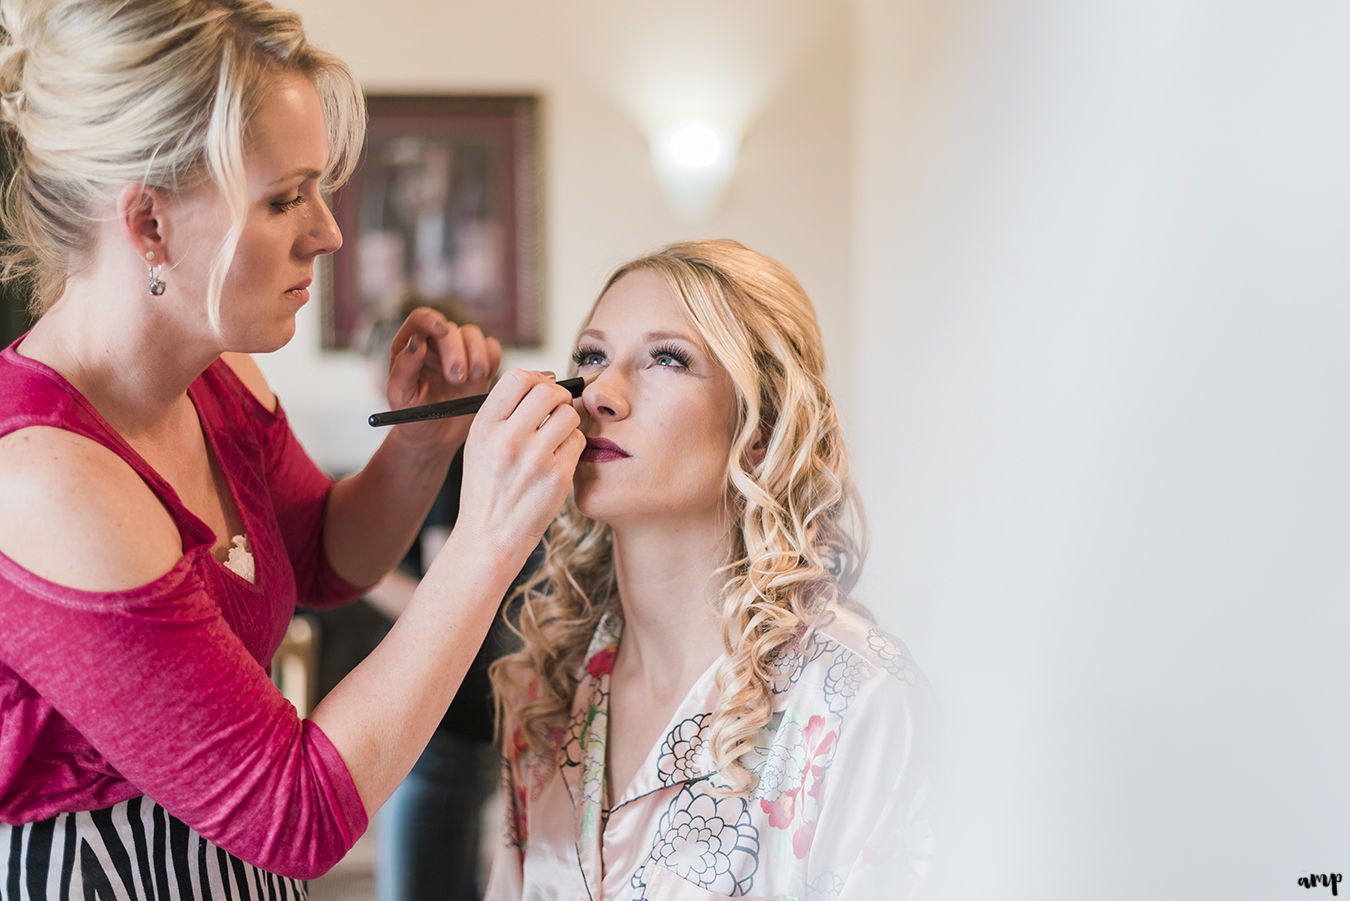 Getting Ready Stress-Free on Your Wedding Morning